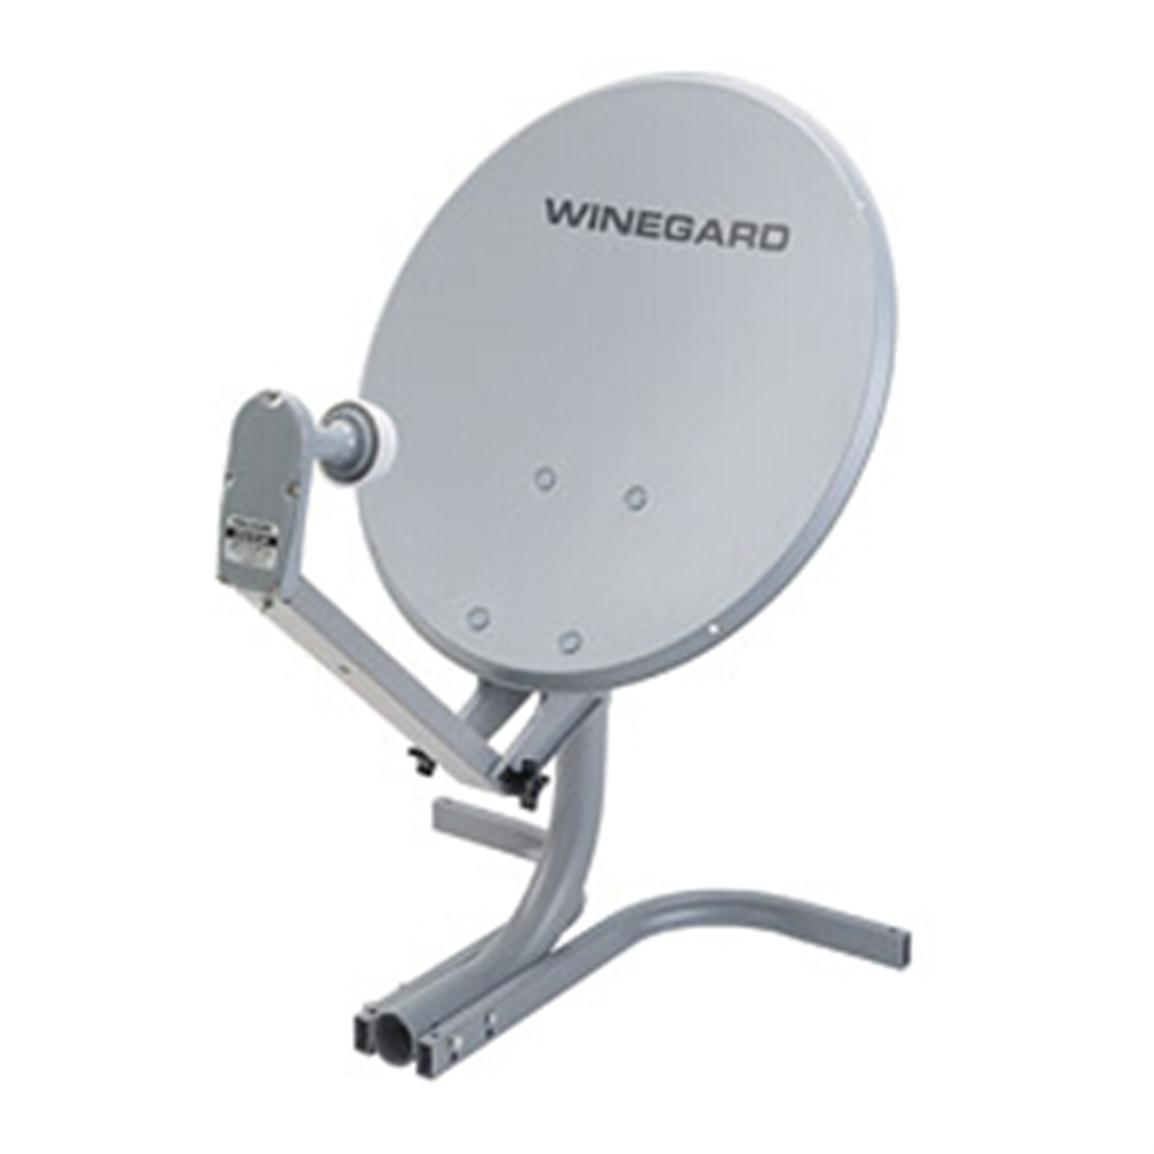 Winegard® Portable Satellite Dish and Mount